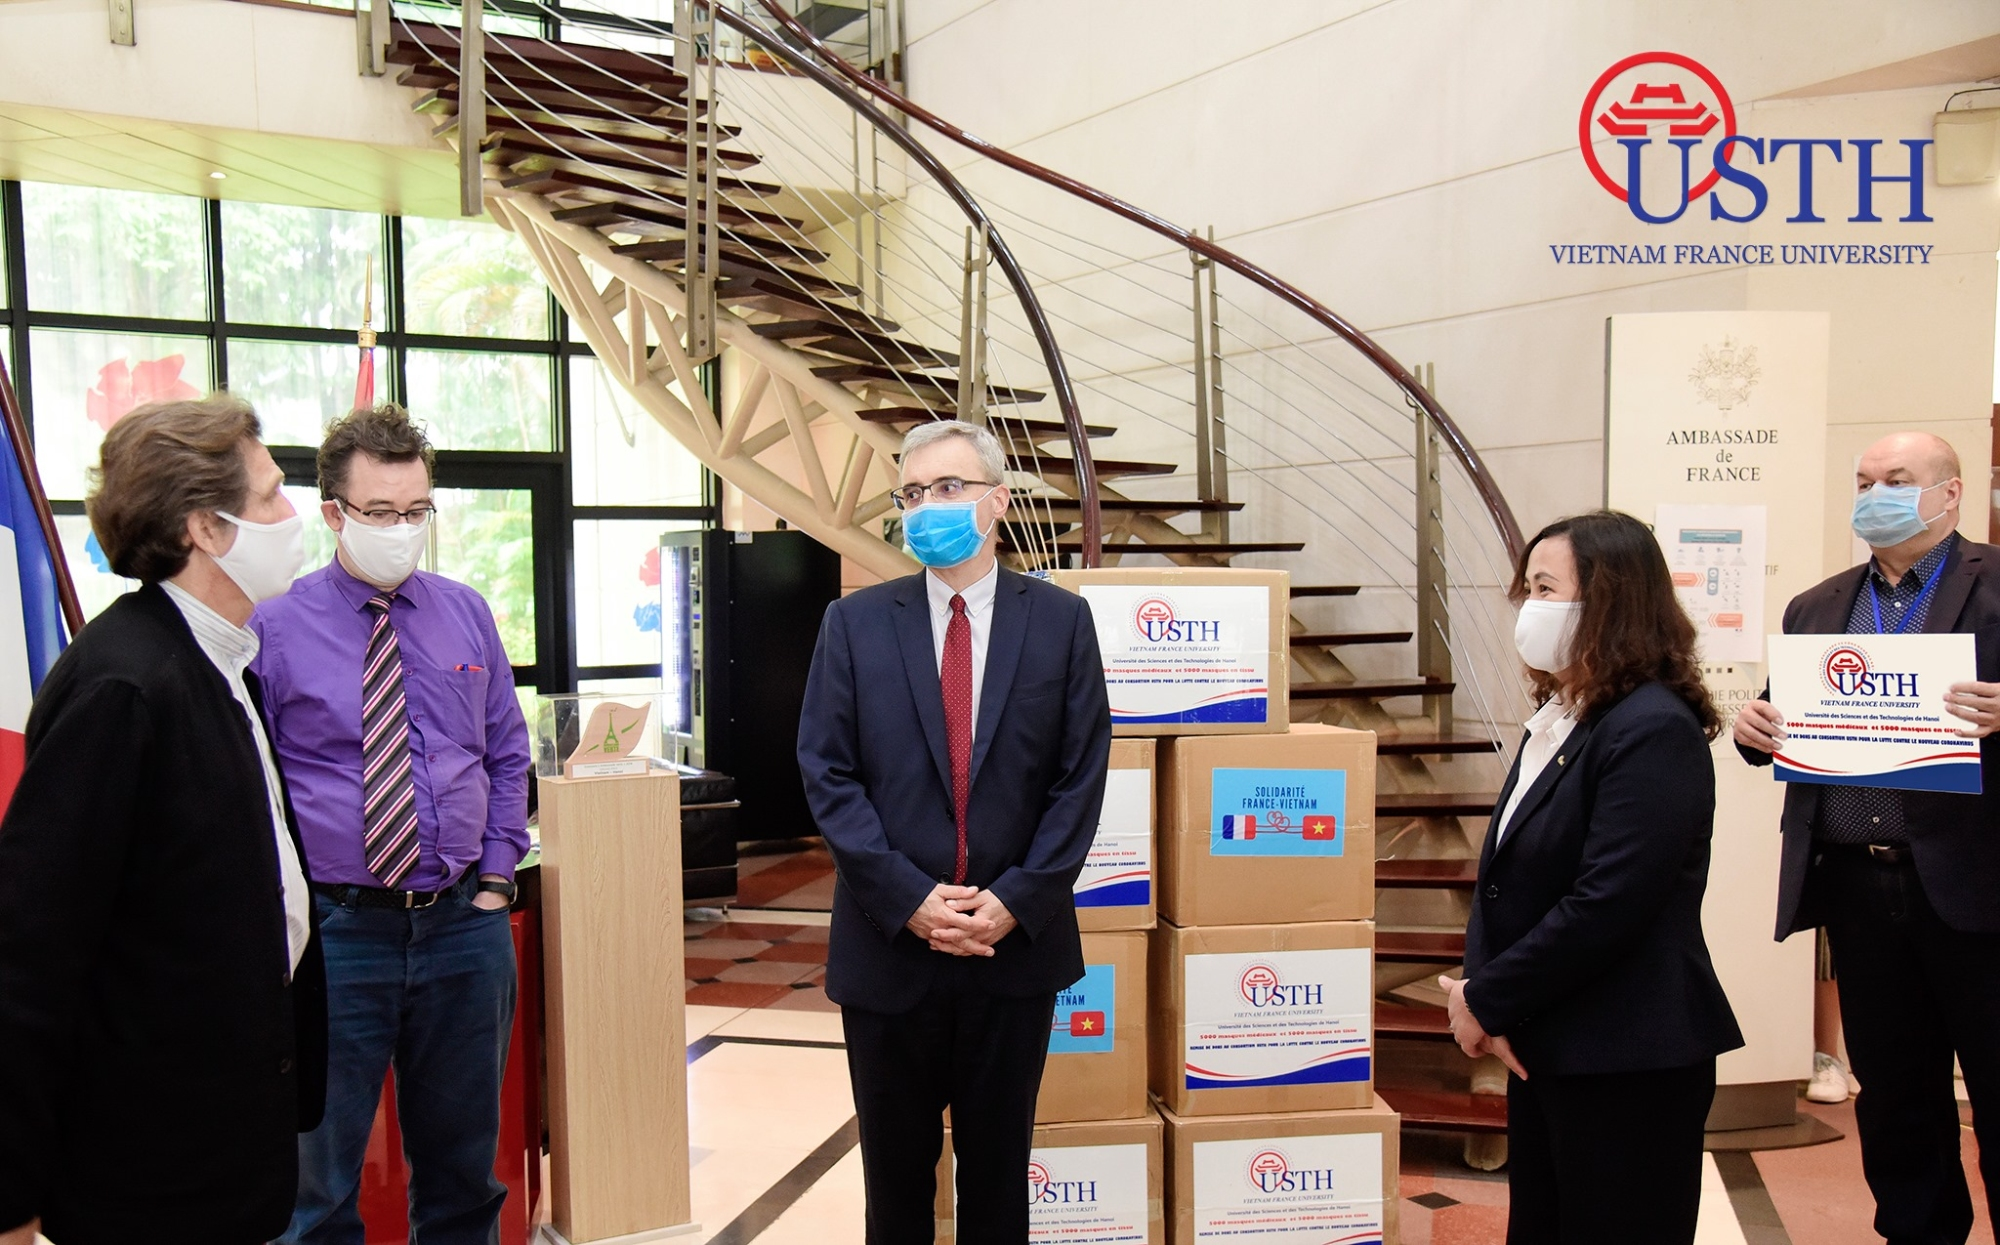 usth gifted 10 000 facemasks to french partners 1